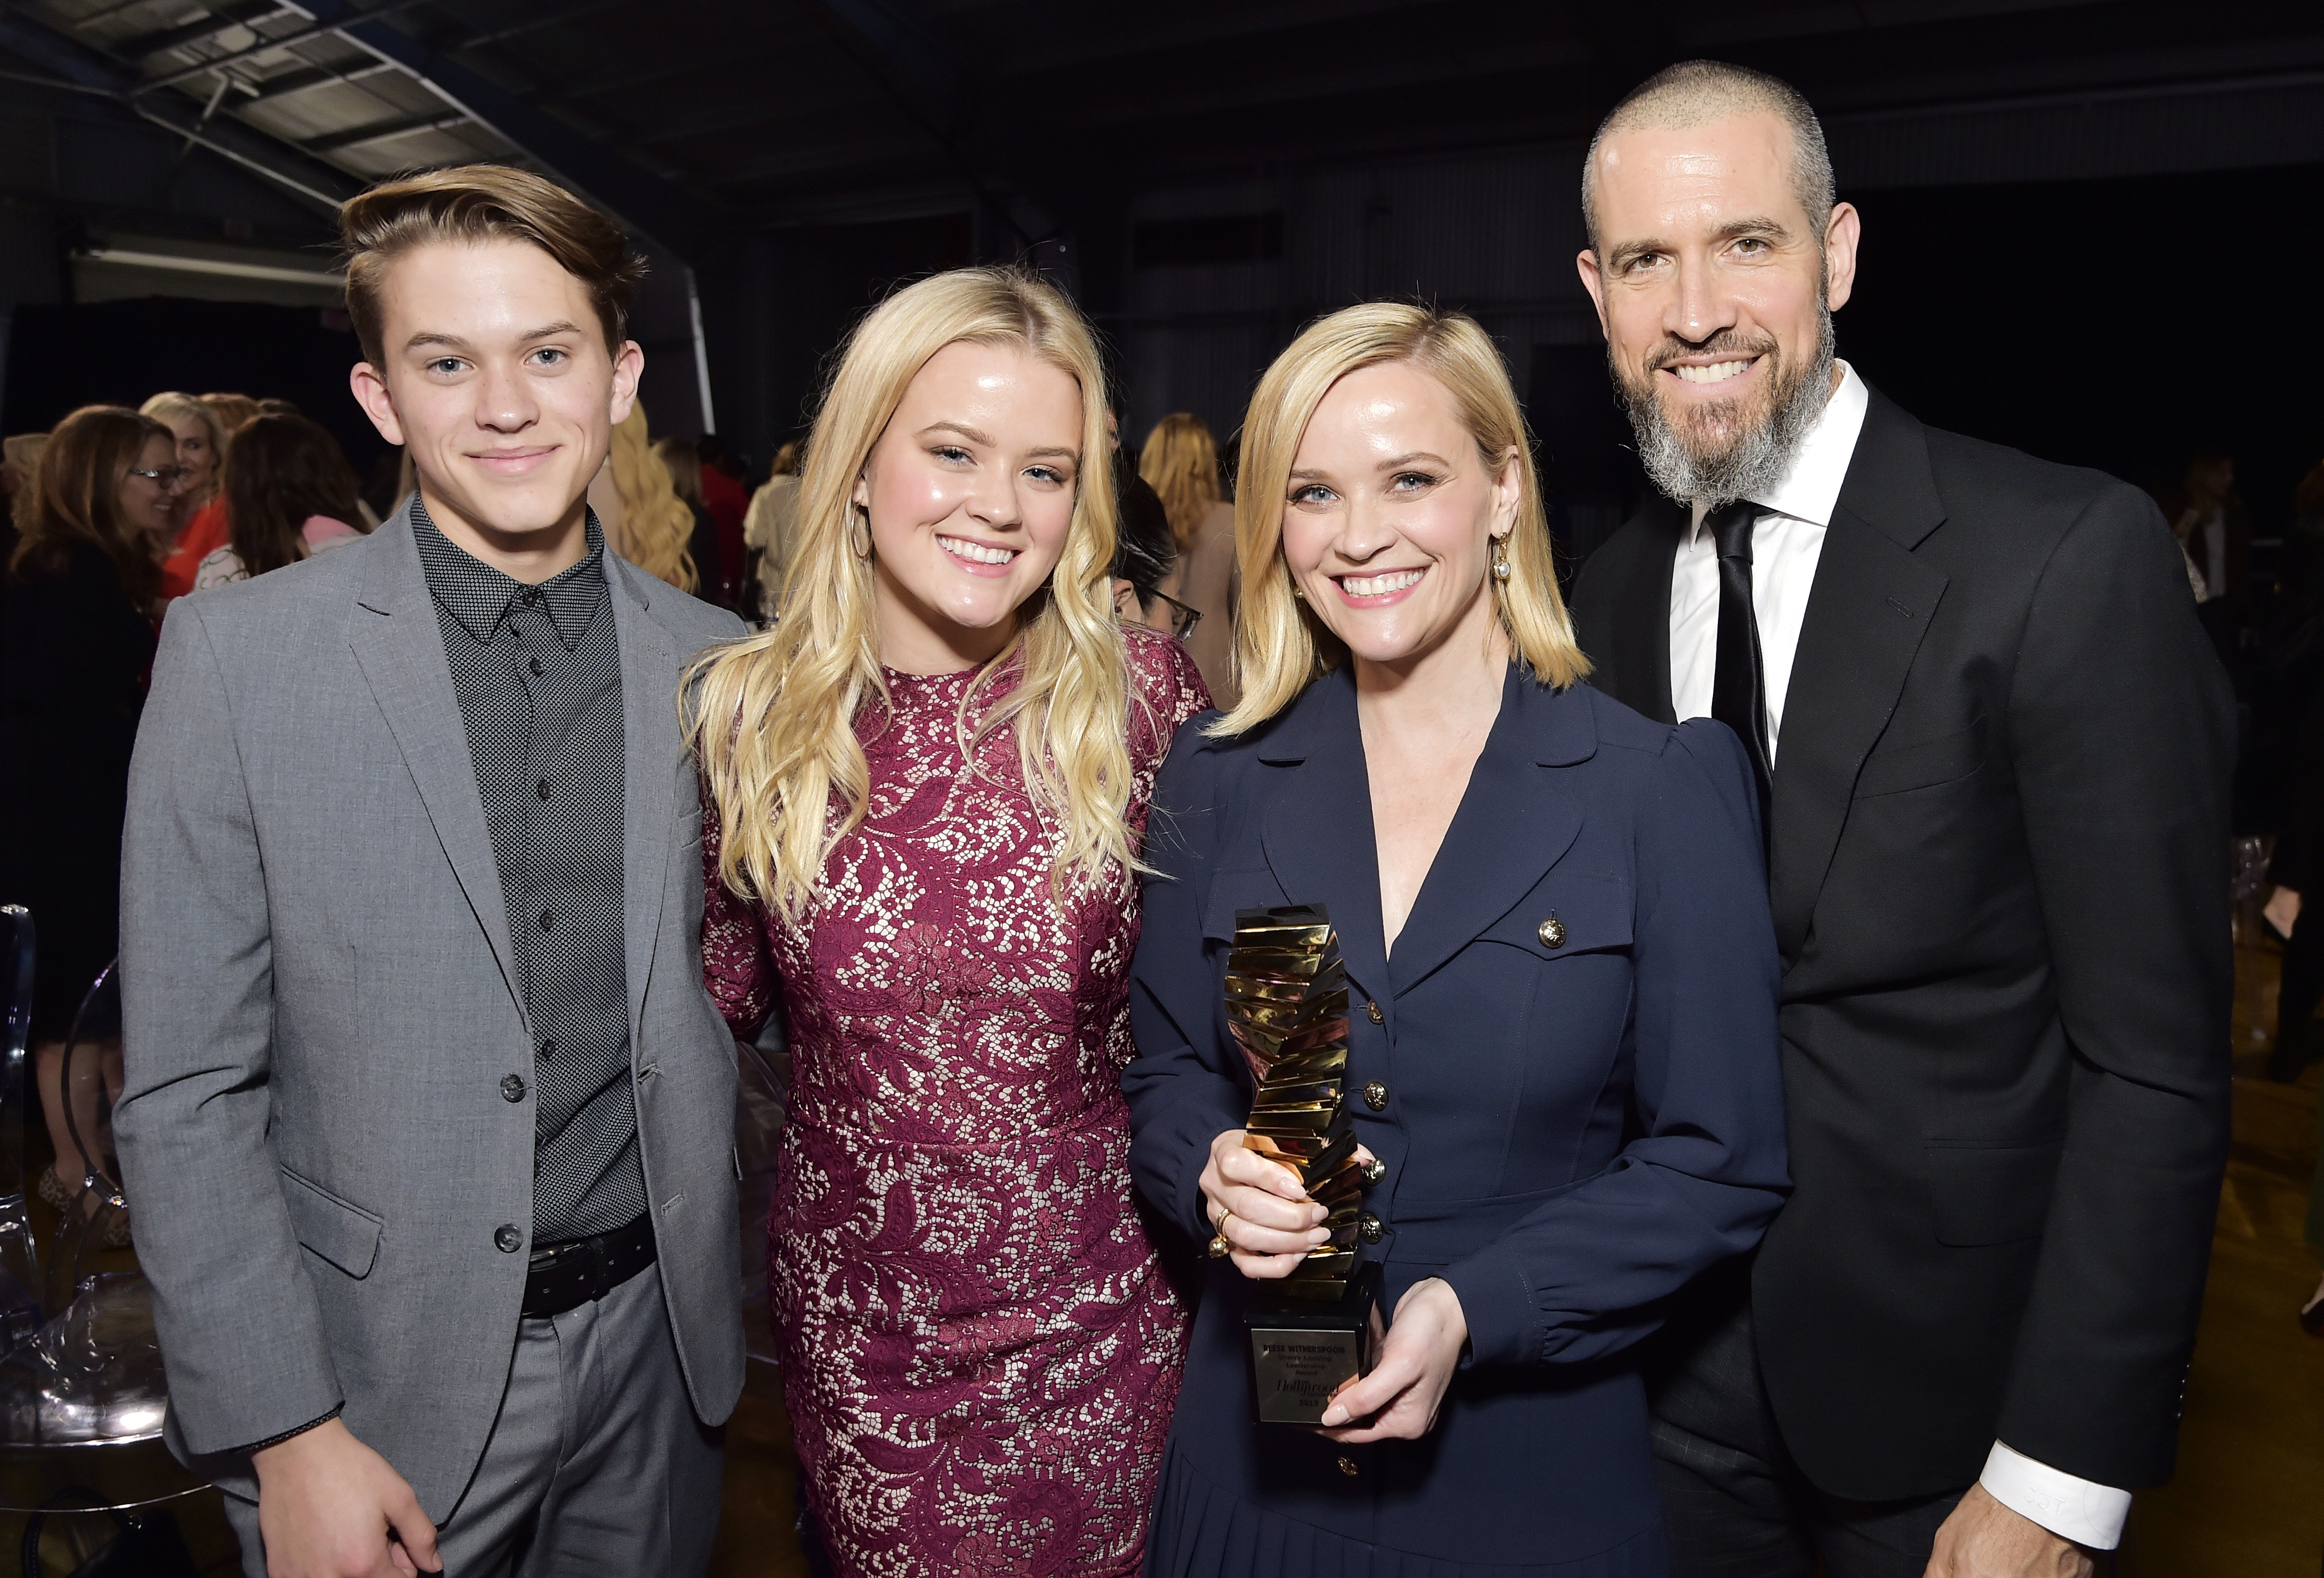 Reese Witherspoon with her husband and two kids. | Photo: Getty Images